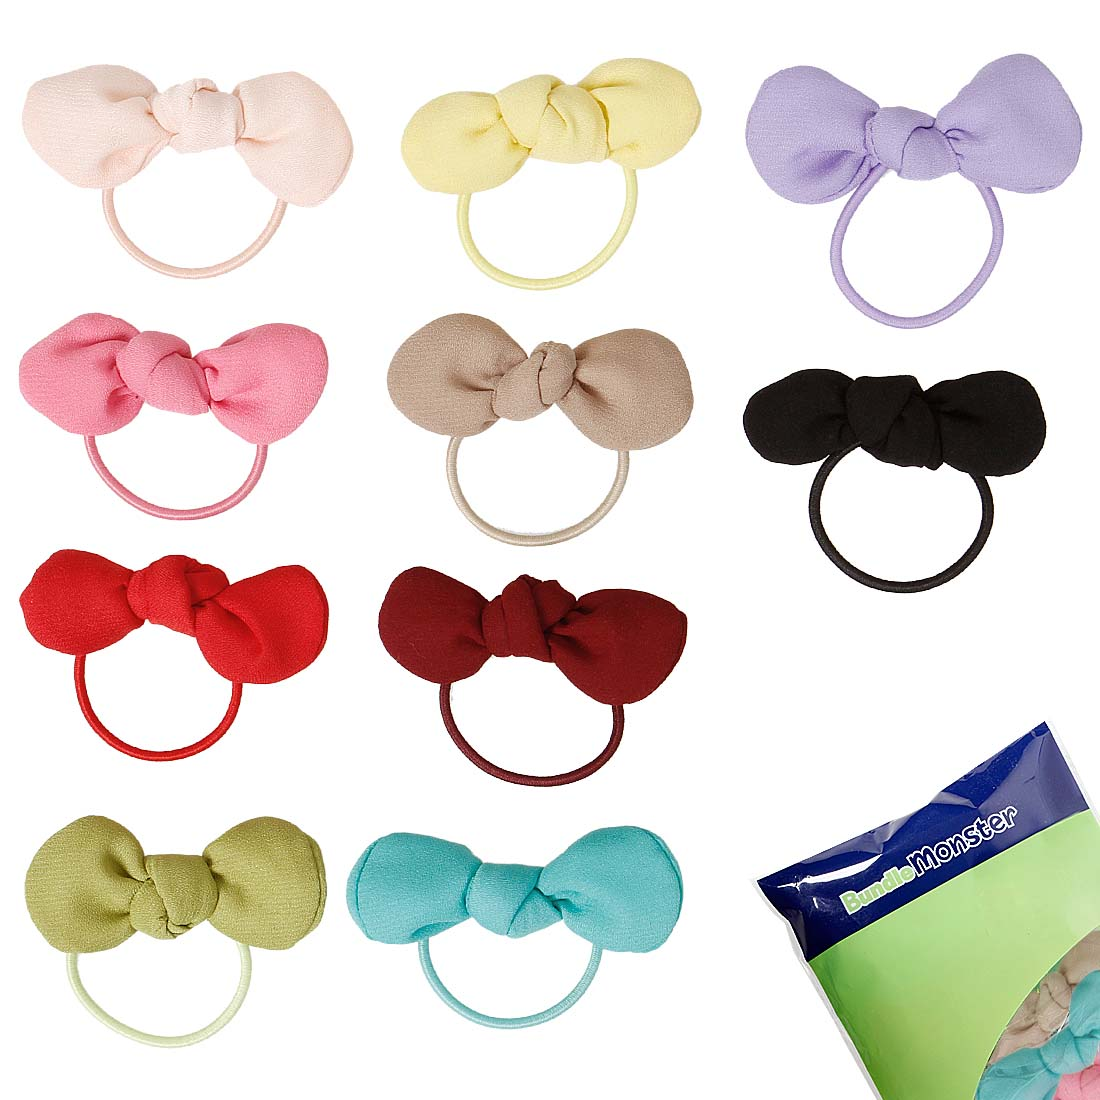 BMC Cute Little 10pc Multicolored Crepe Chiffon Mini Baby Bow Elastic Hair Ties